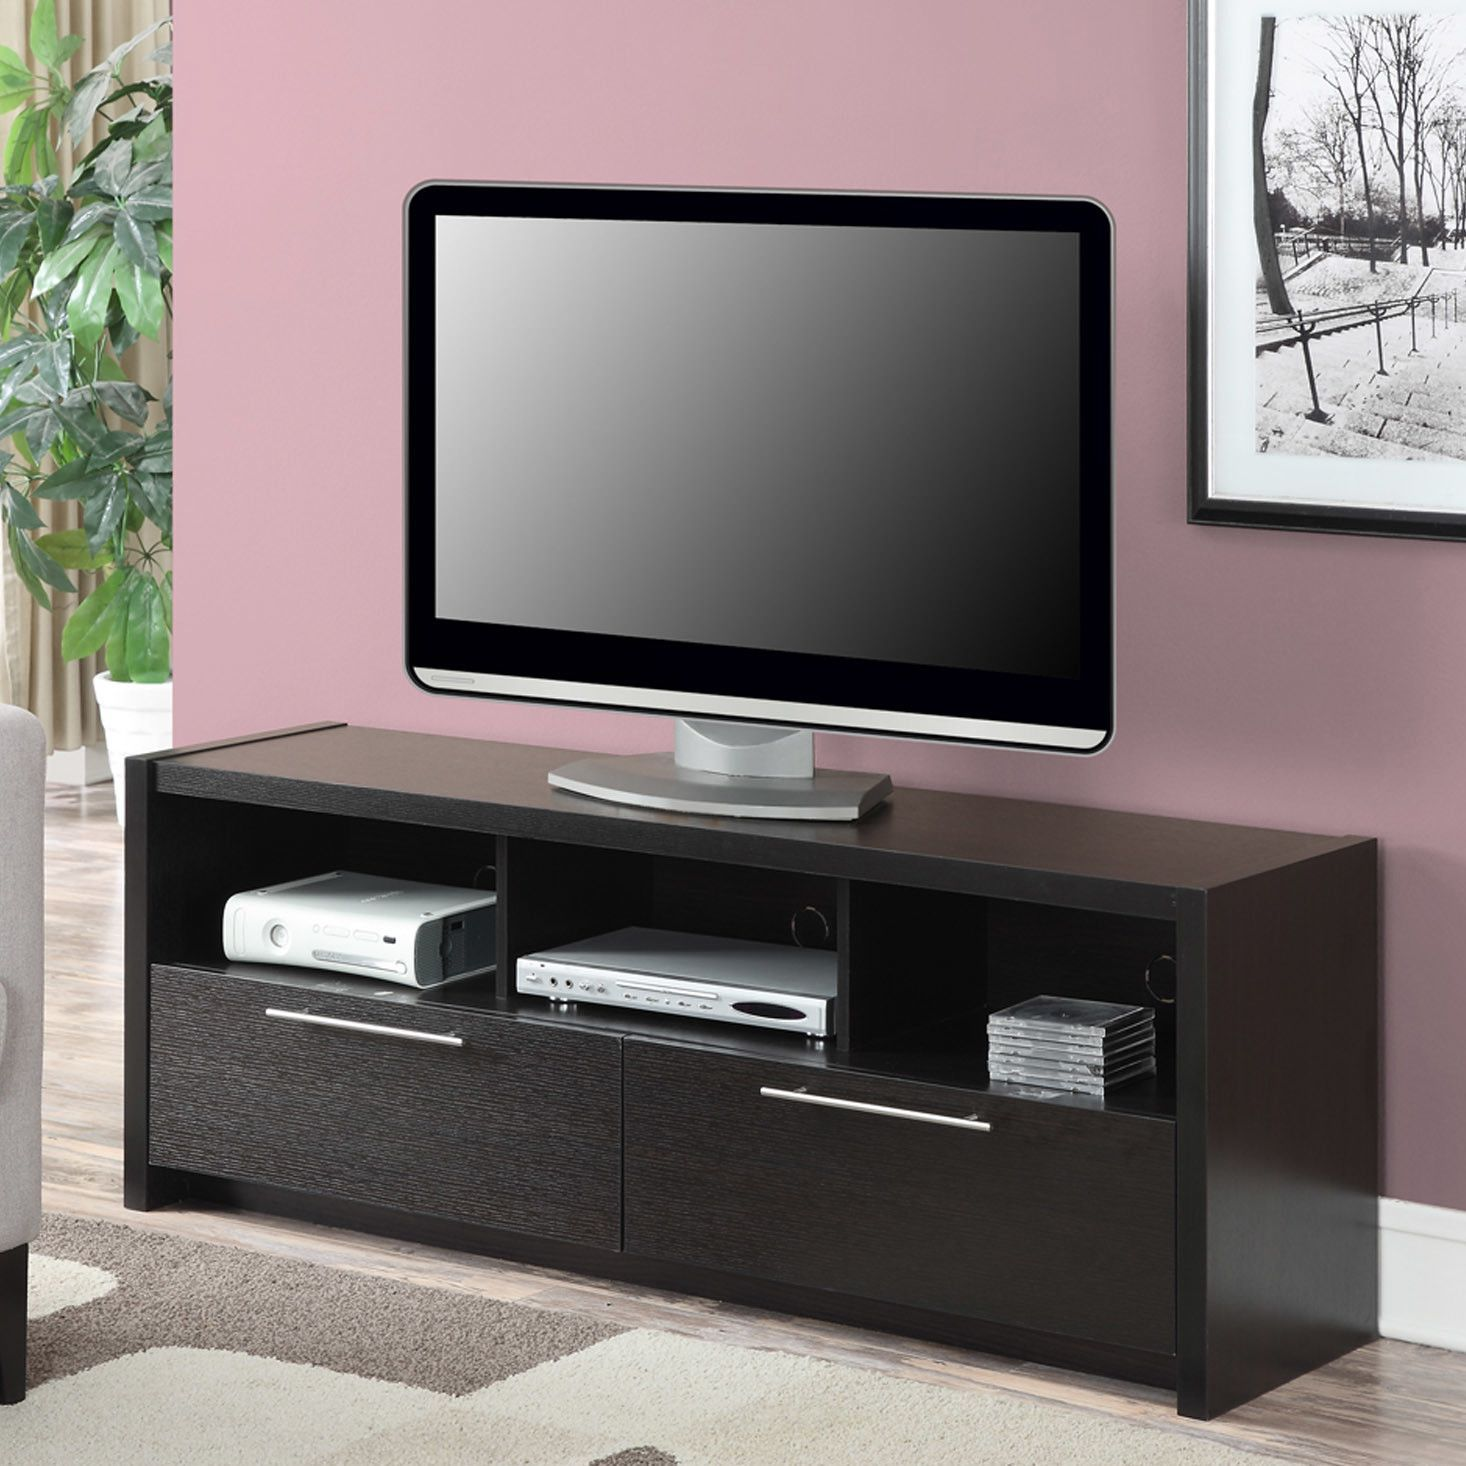 Bianca Tv Stand 75 Tv Pinterest Tv Stands # Pier Import Meuble Tv